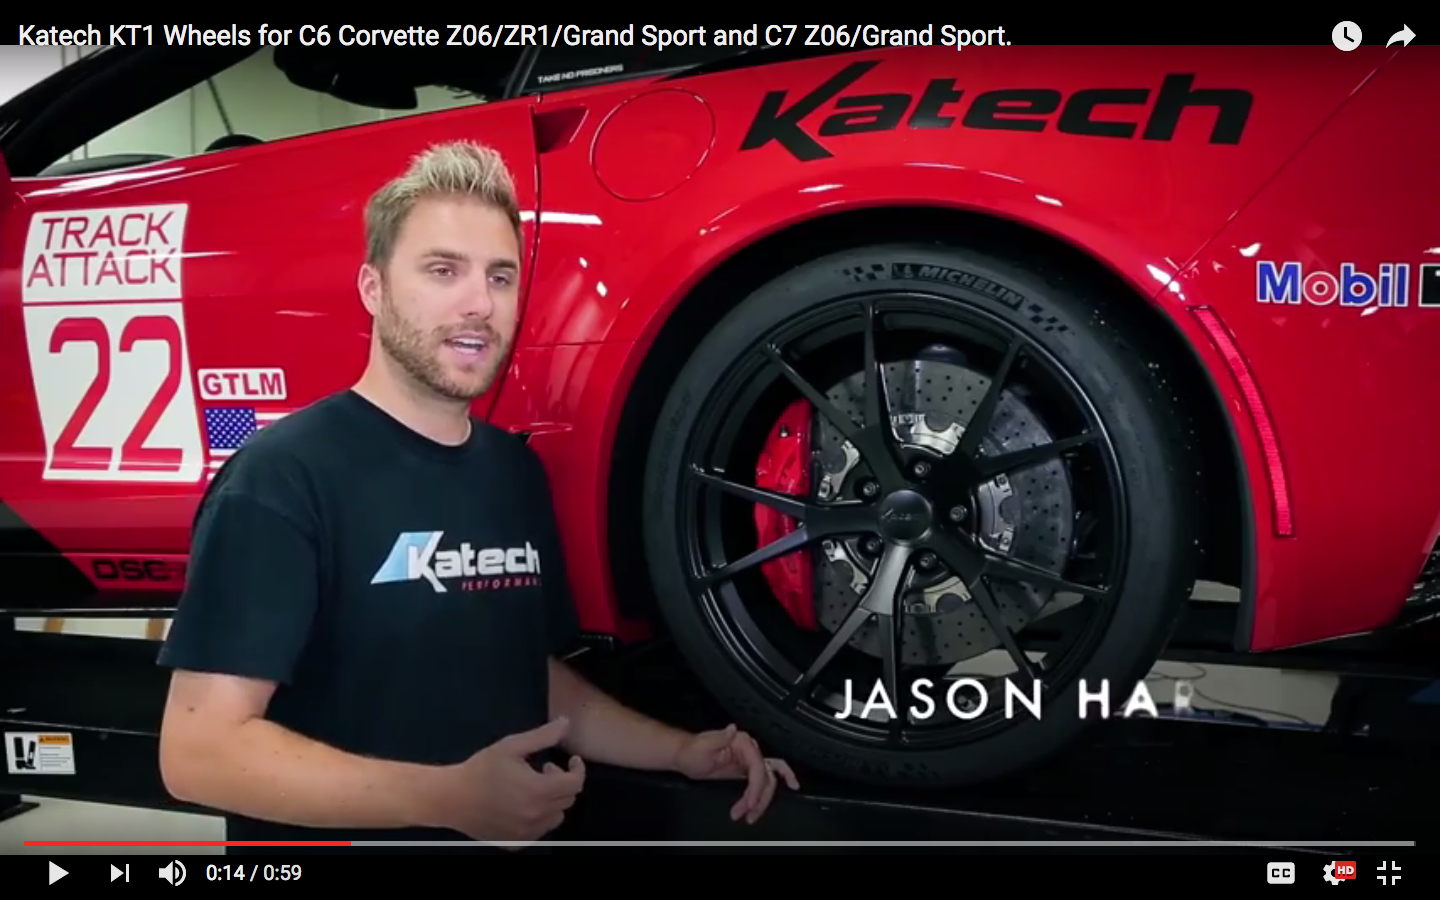 2017 Chevrolet Corvette Z06 | Video: Katech's One Piece Forged Monoblock KT1 Wheel by Forgeline